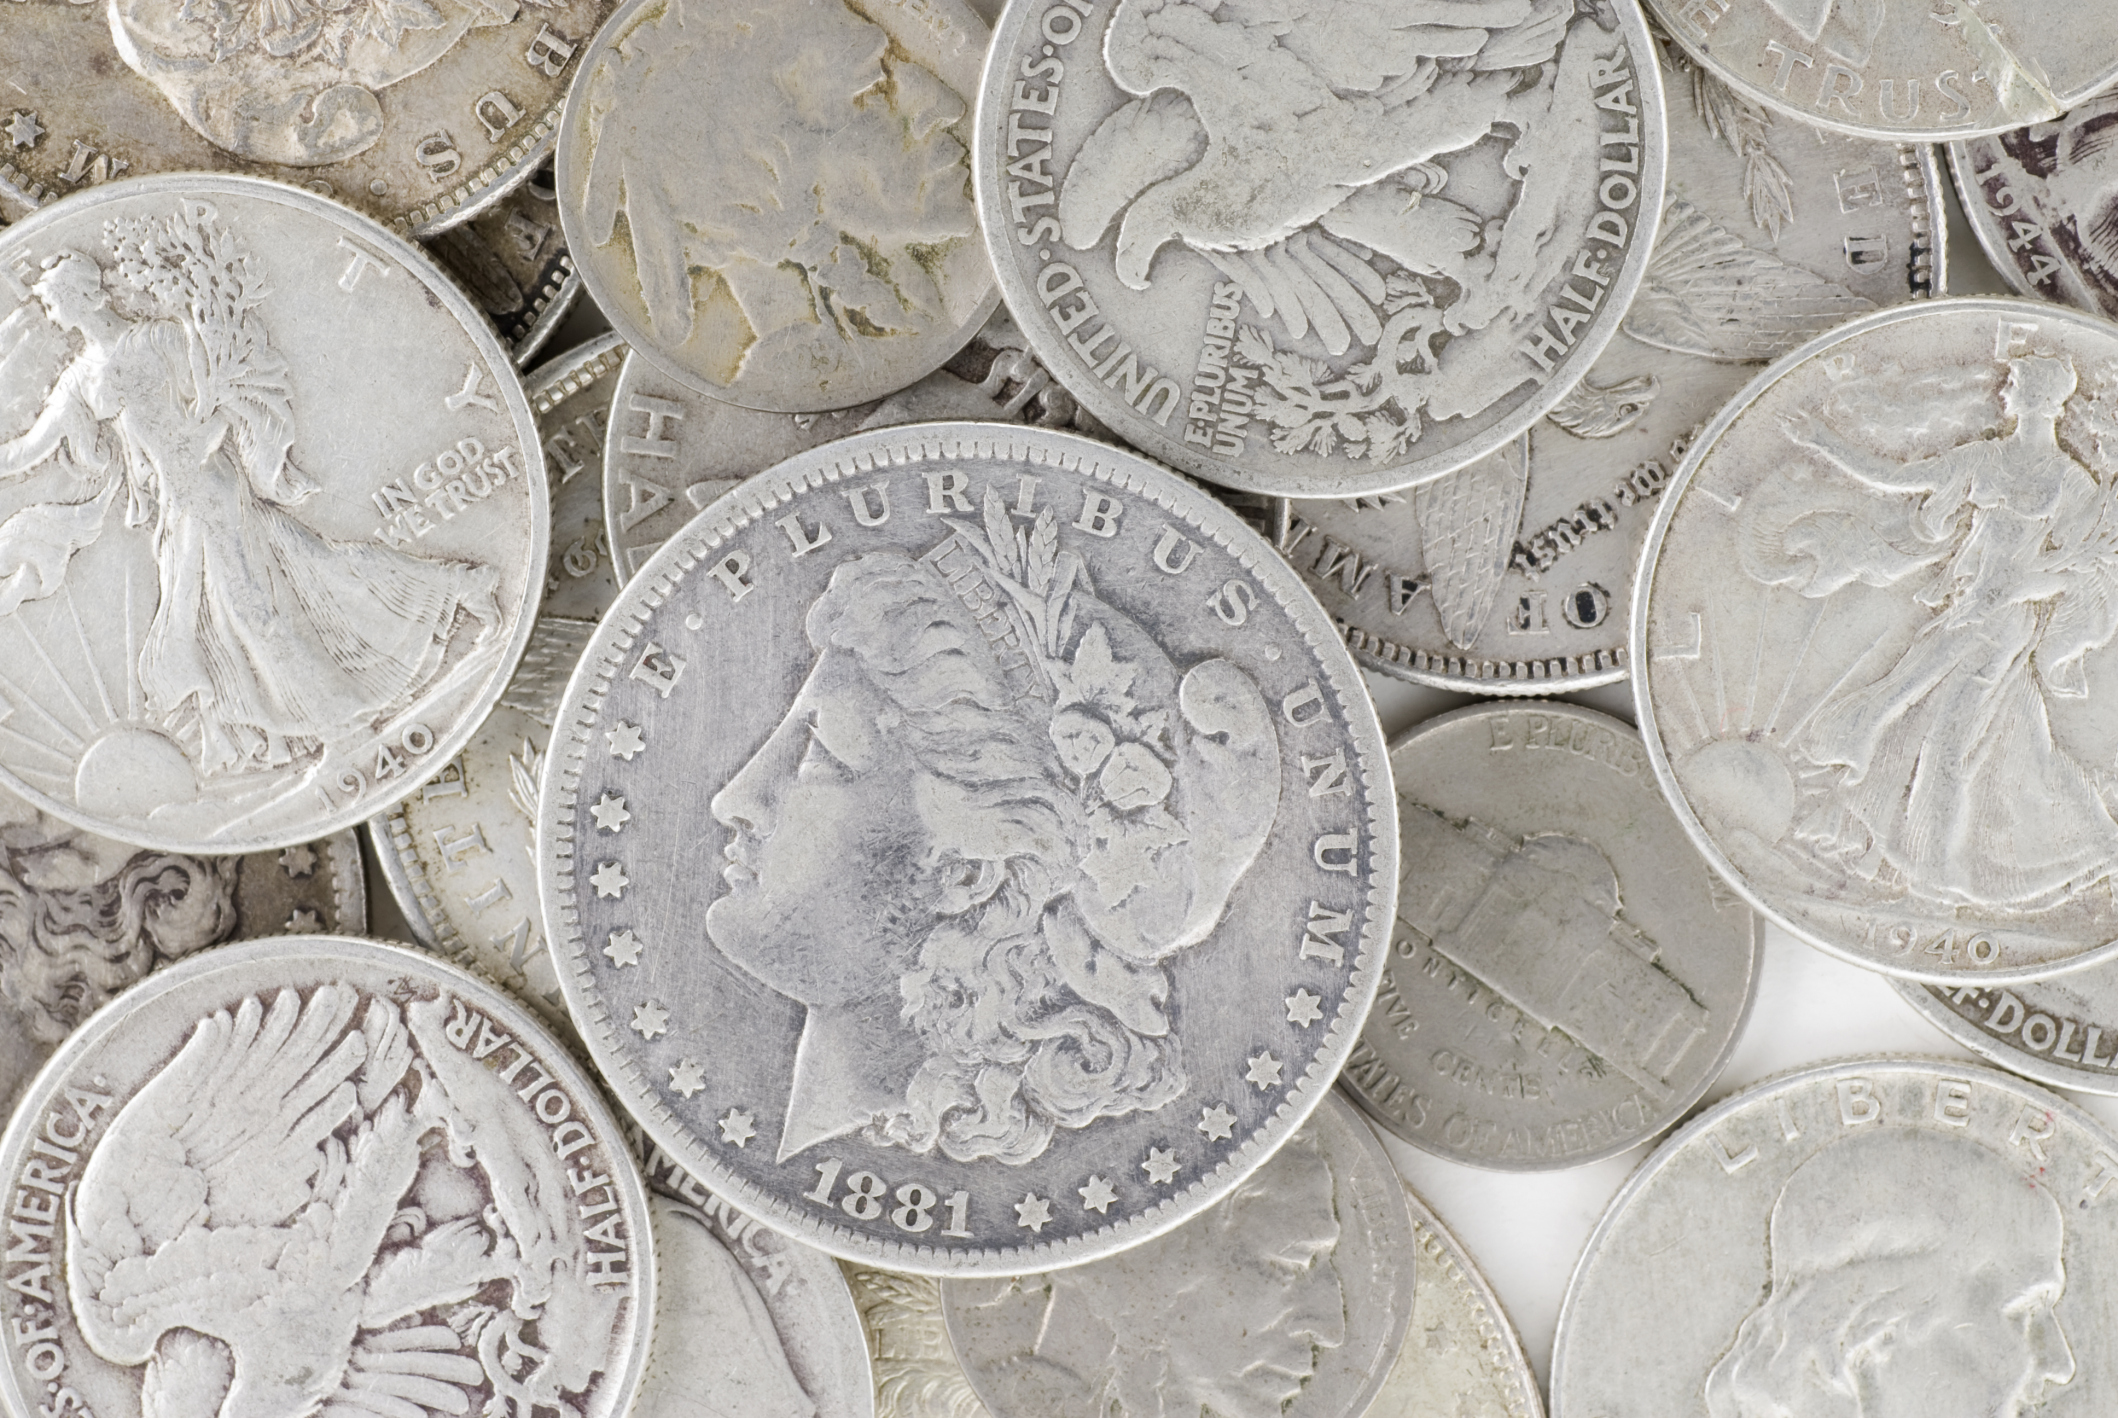 Why You Should Never Take A Coin At Face Value